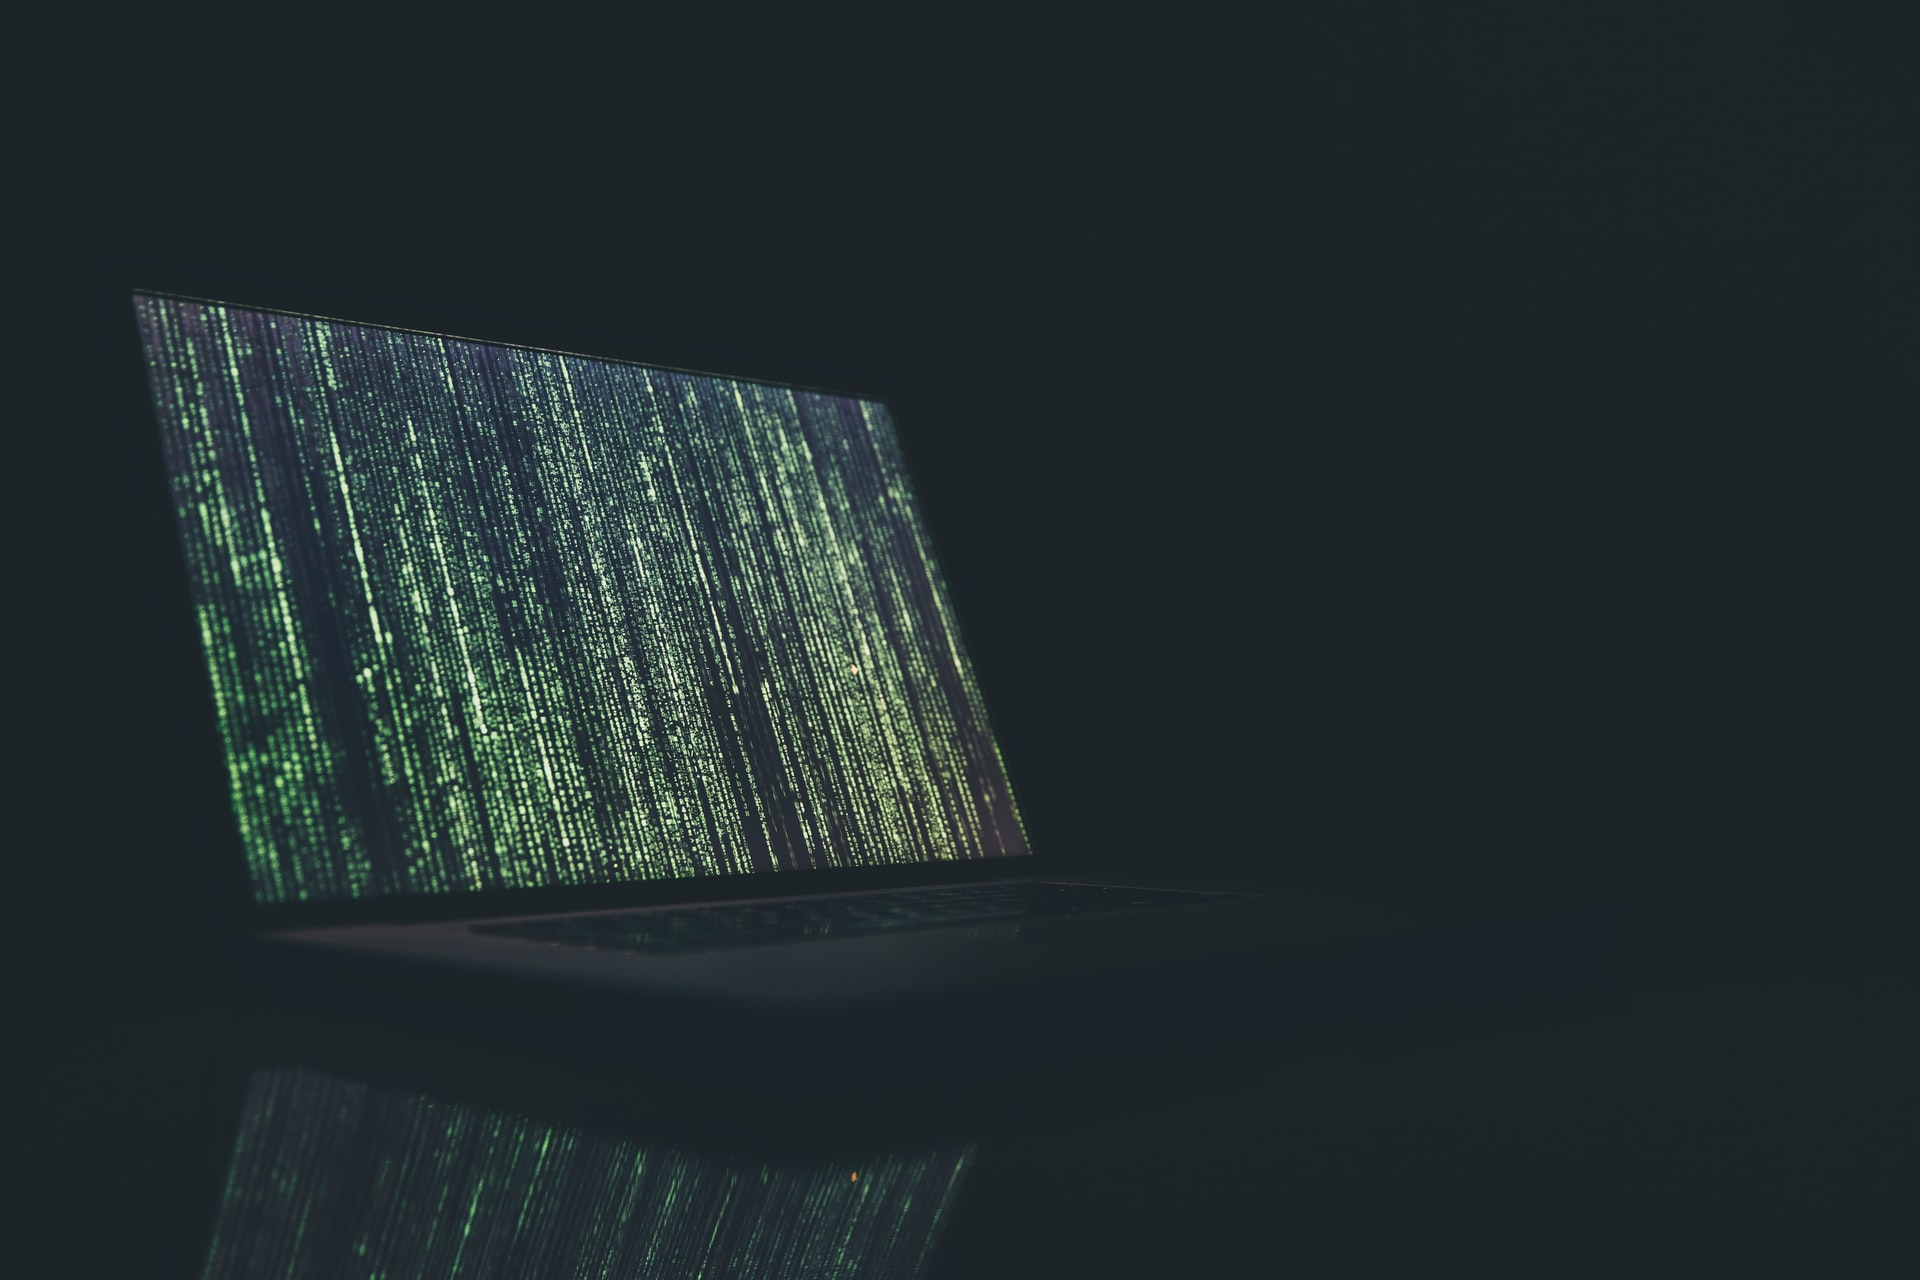 Cybersecurity Stocks Break Out on COVID-19 Tailwinds